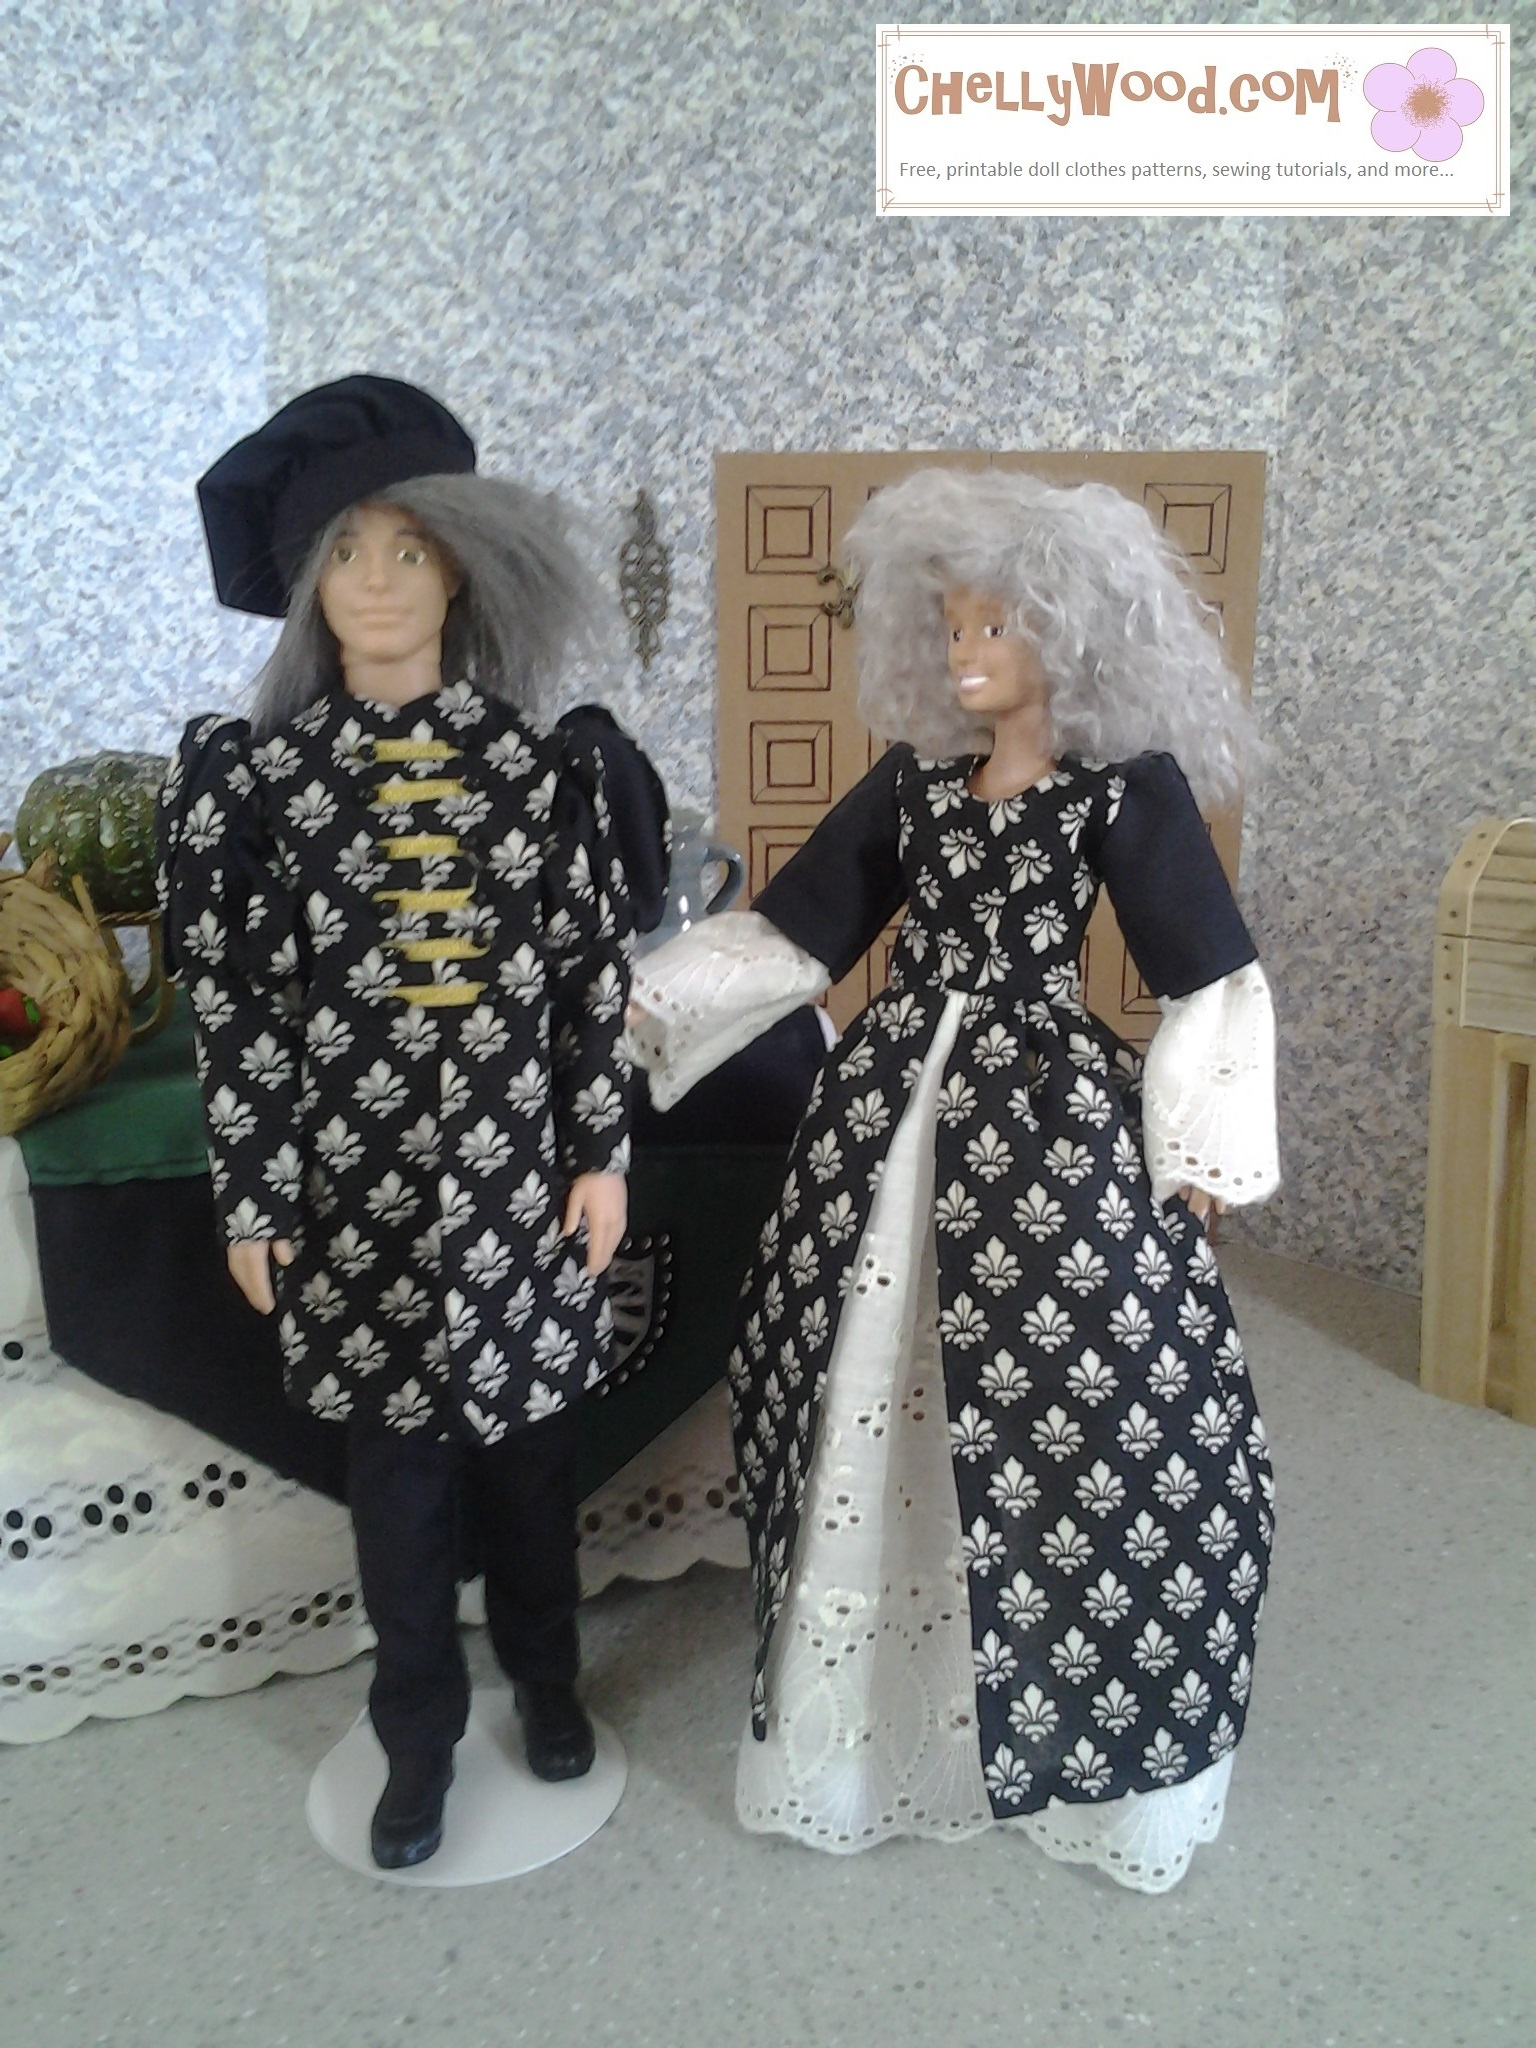 The photograph shows a Barbie and Ken whose faces and hair have been redone. The Ken doll's grey hair is quite long under his muffin cap. He has a puff-sleeve tunic and trousers. The Barbie's fluffy grey haired wig blends well with her black and white dress that has a skirt that's split in front, revealing her pale eyelet fabric petticoat. Her puffy sleeves are jet black and eyelet. The two dolls stand in a large feasting room in a castle diorama.